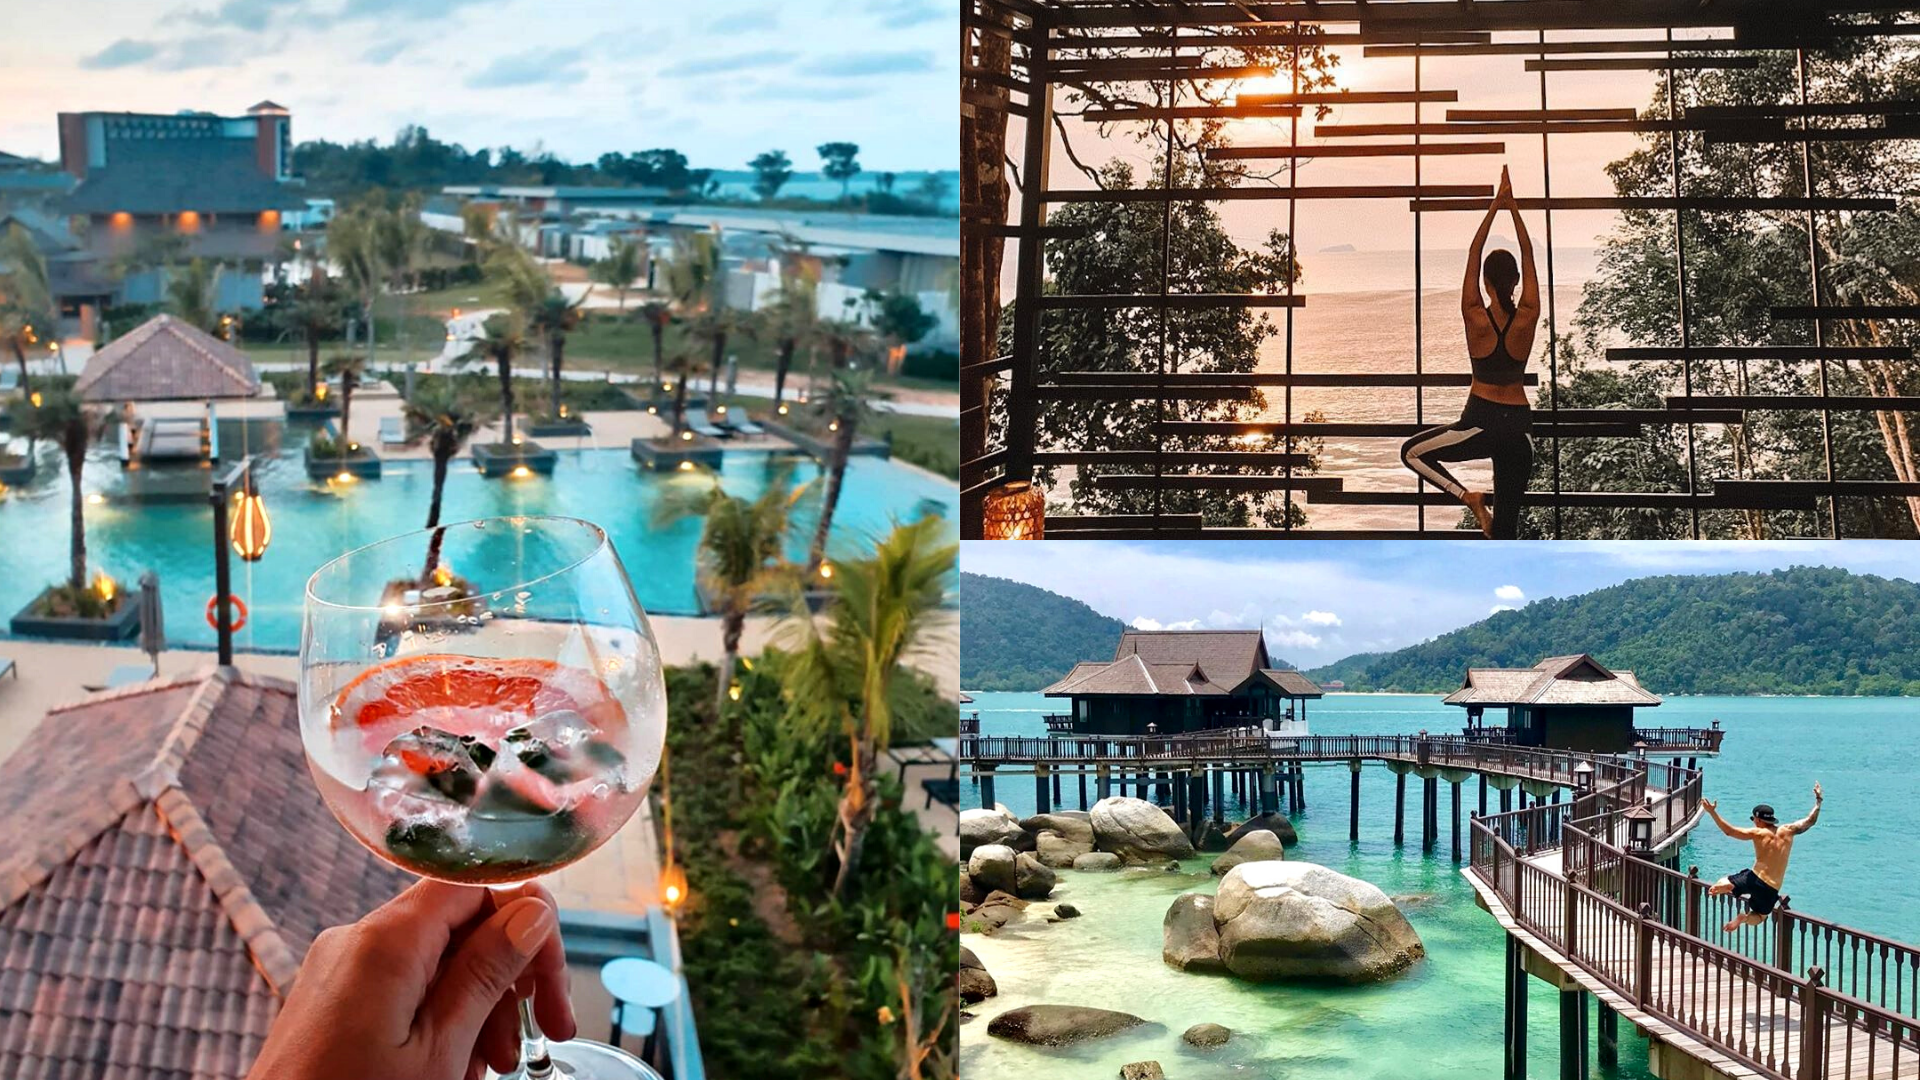 12 Beautiful Beach Resorts In Malaysia For A Romantic Getaway Filled With Sun, Sand, And Fun